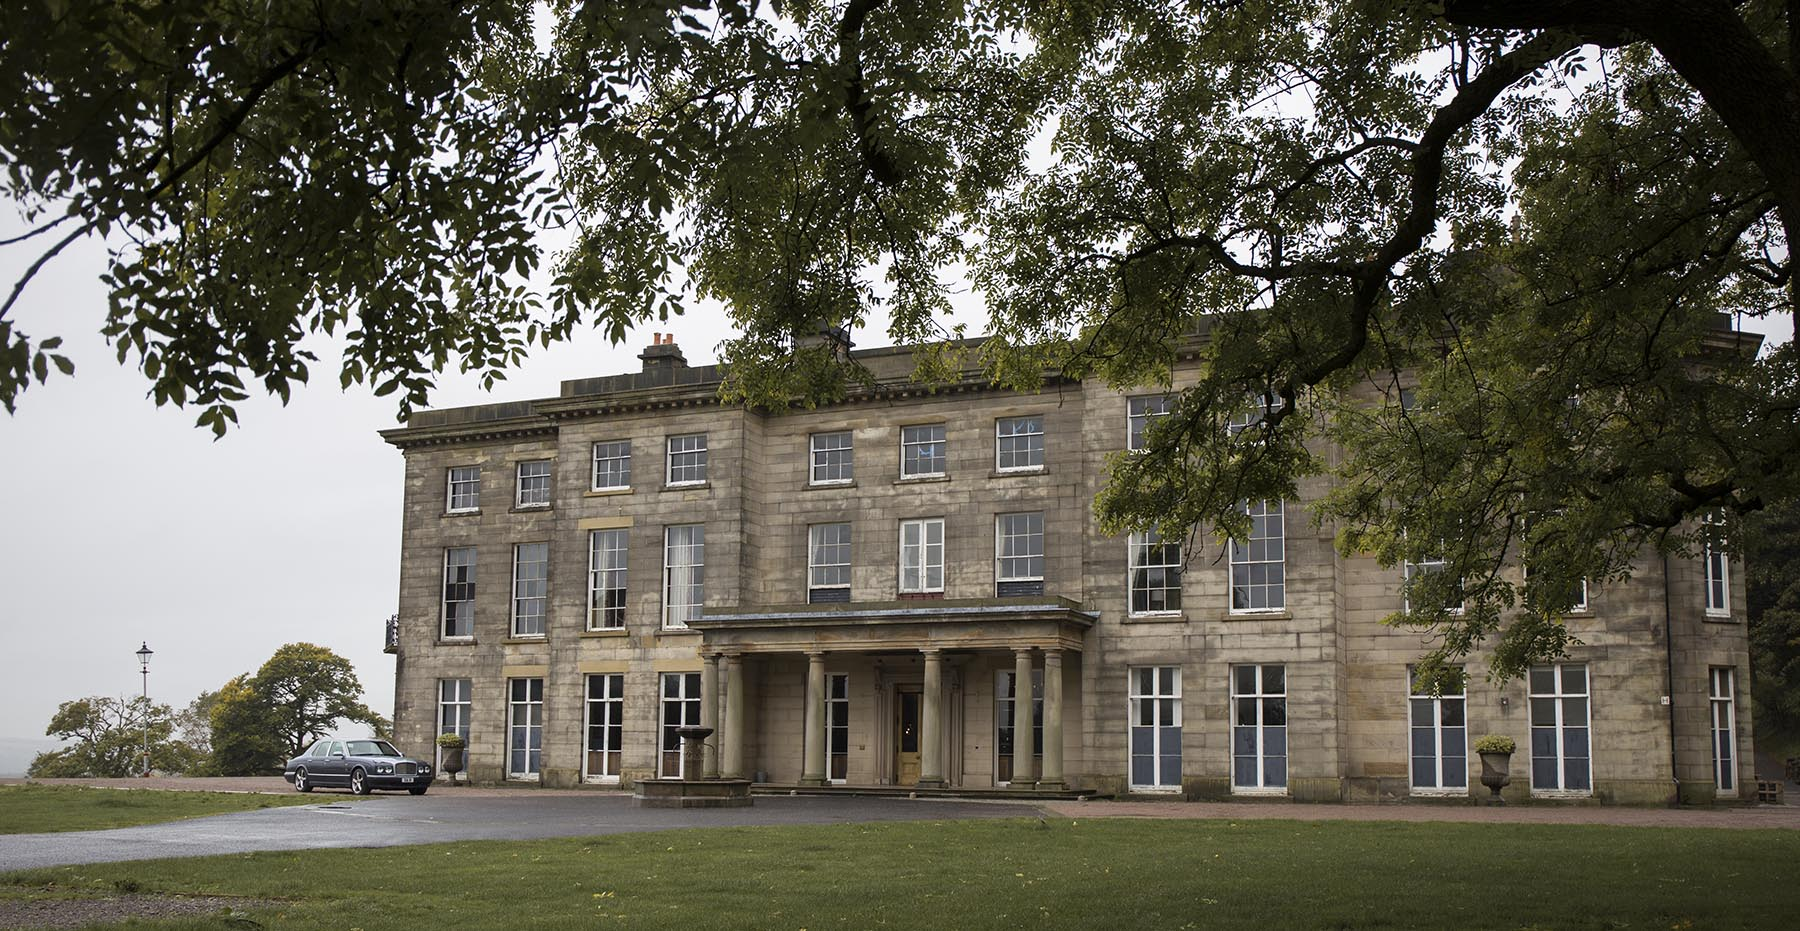 Haigh Hall front view